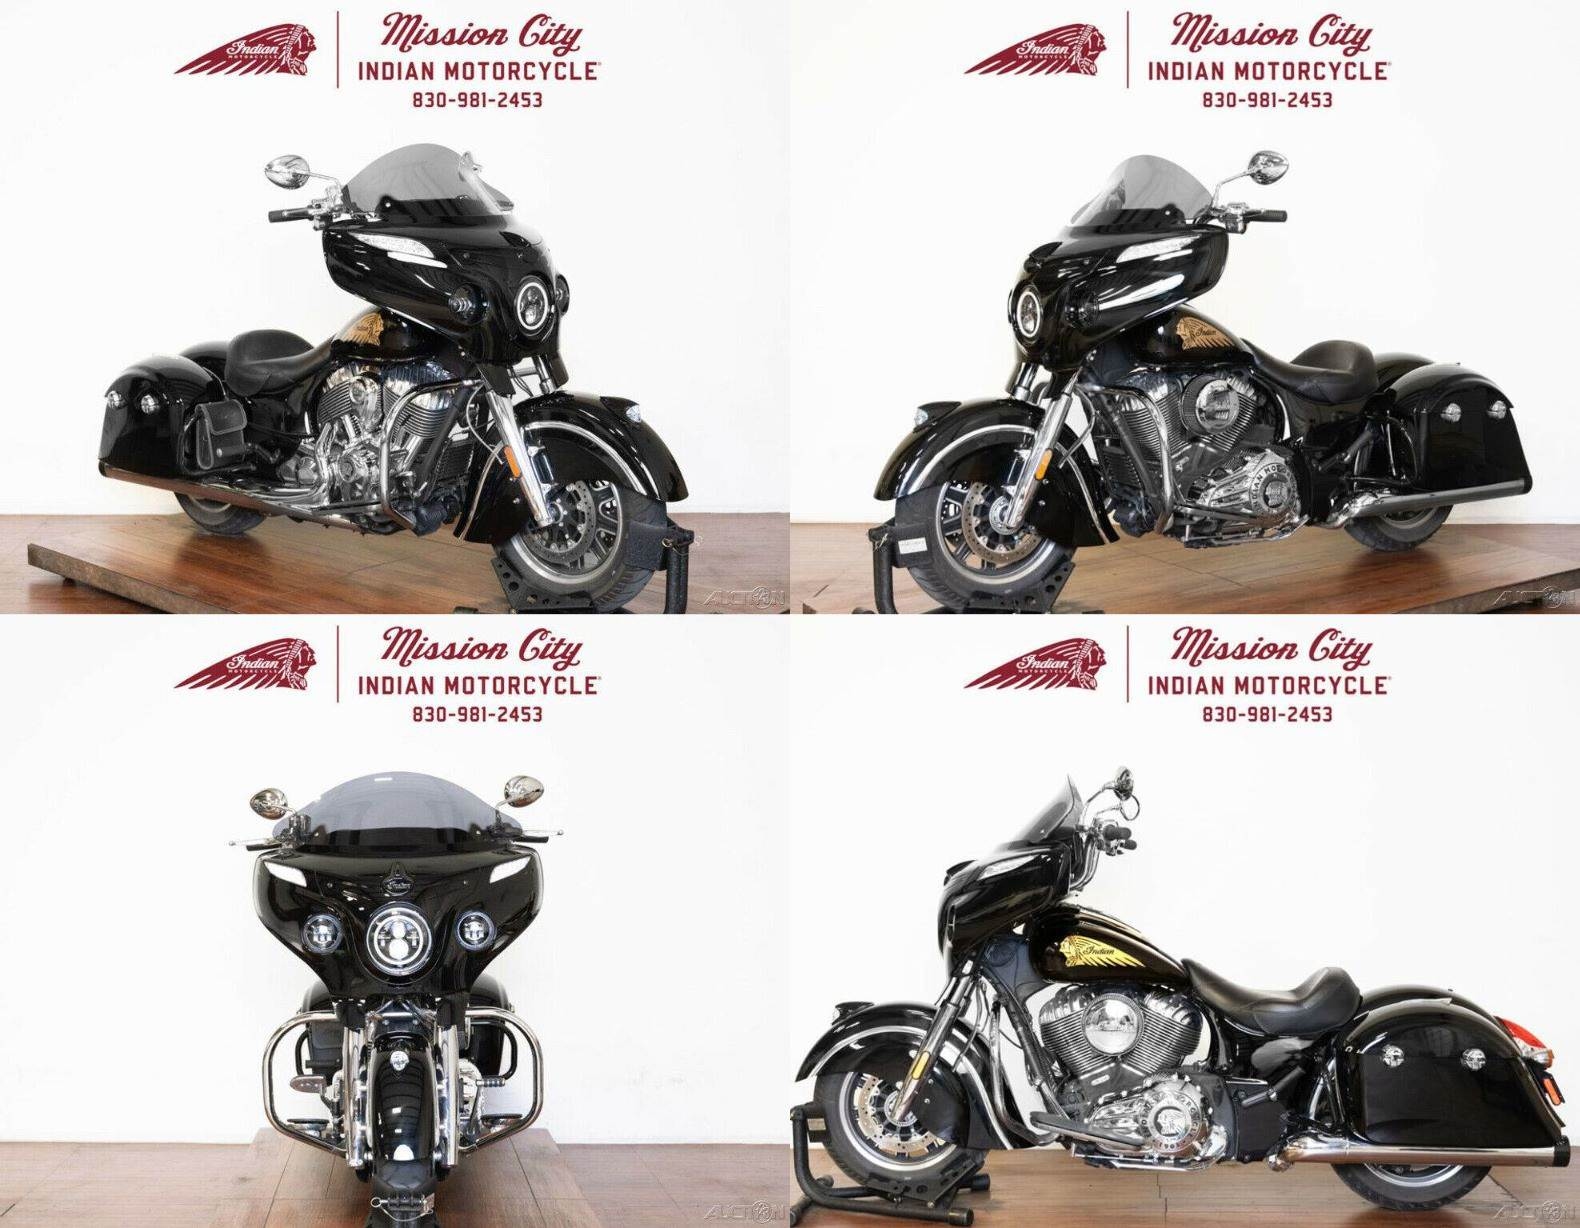 2018 Indian Chieftain Classic ABS Thunder Black Thunder Black used for sale